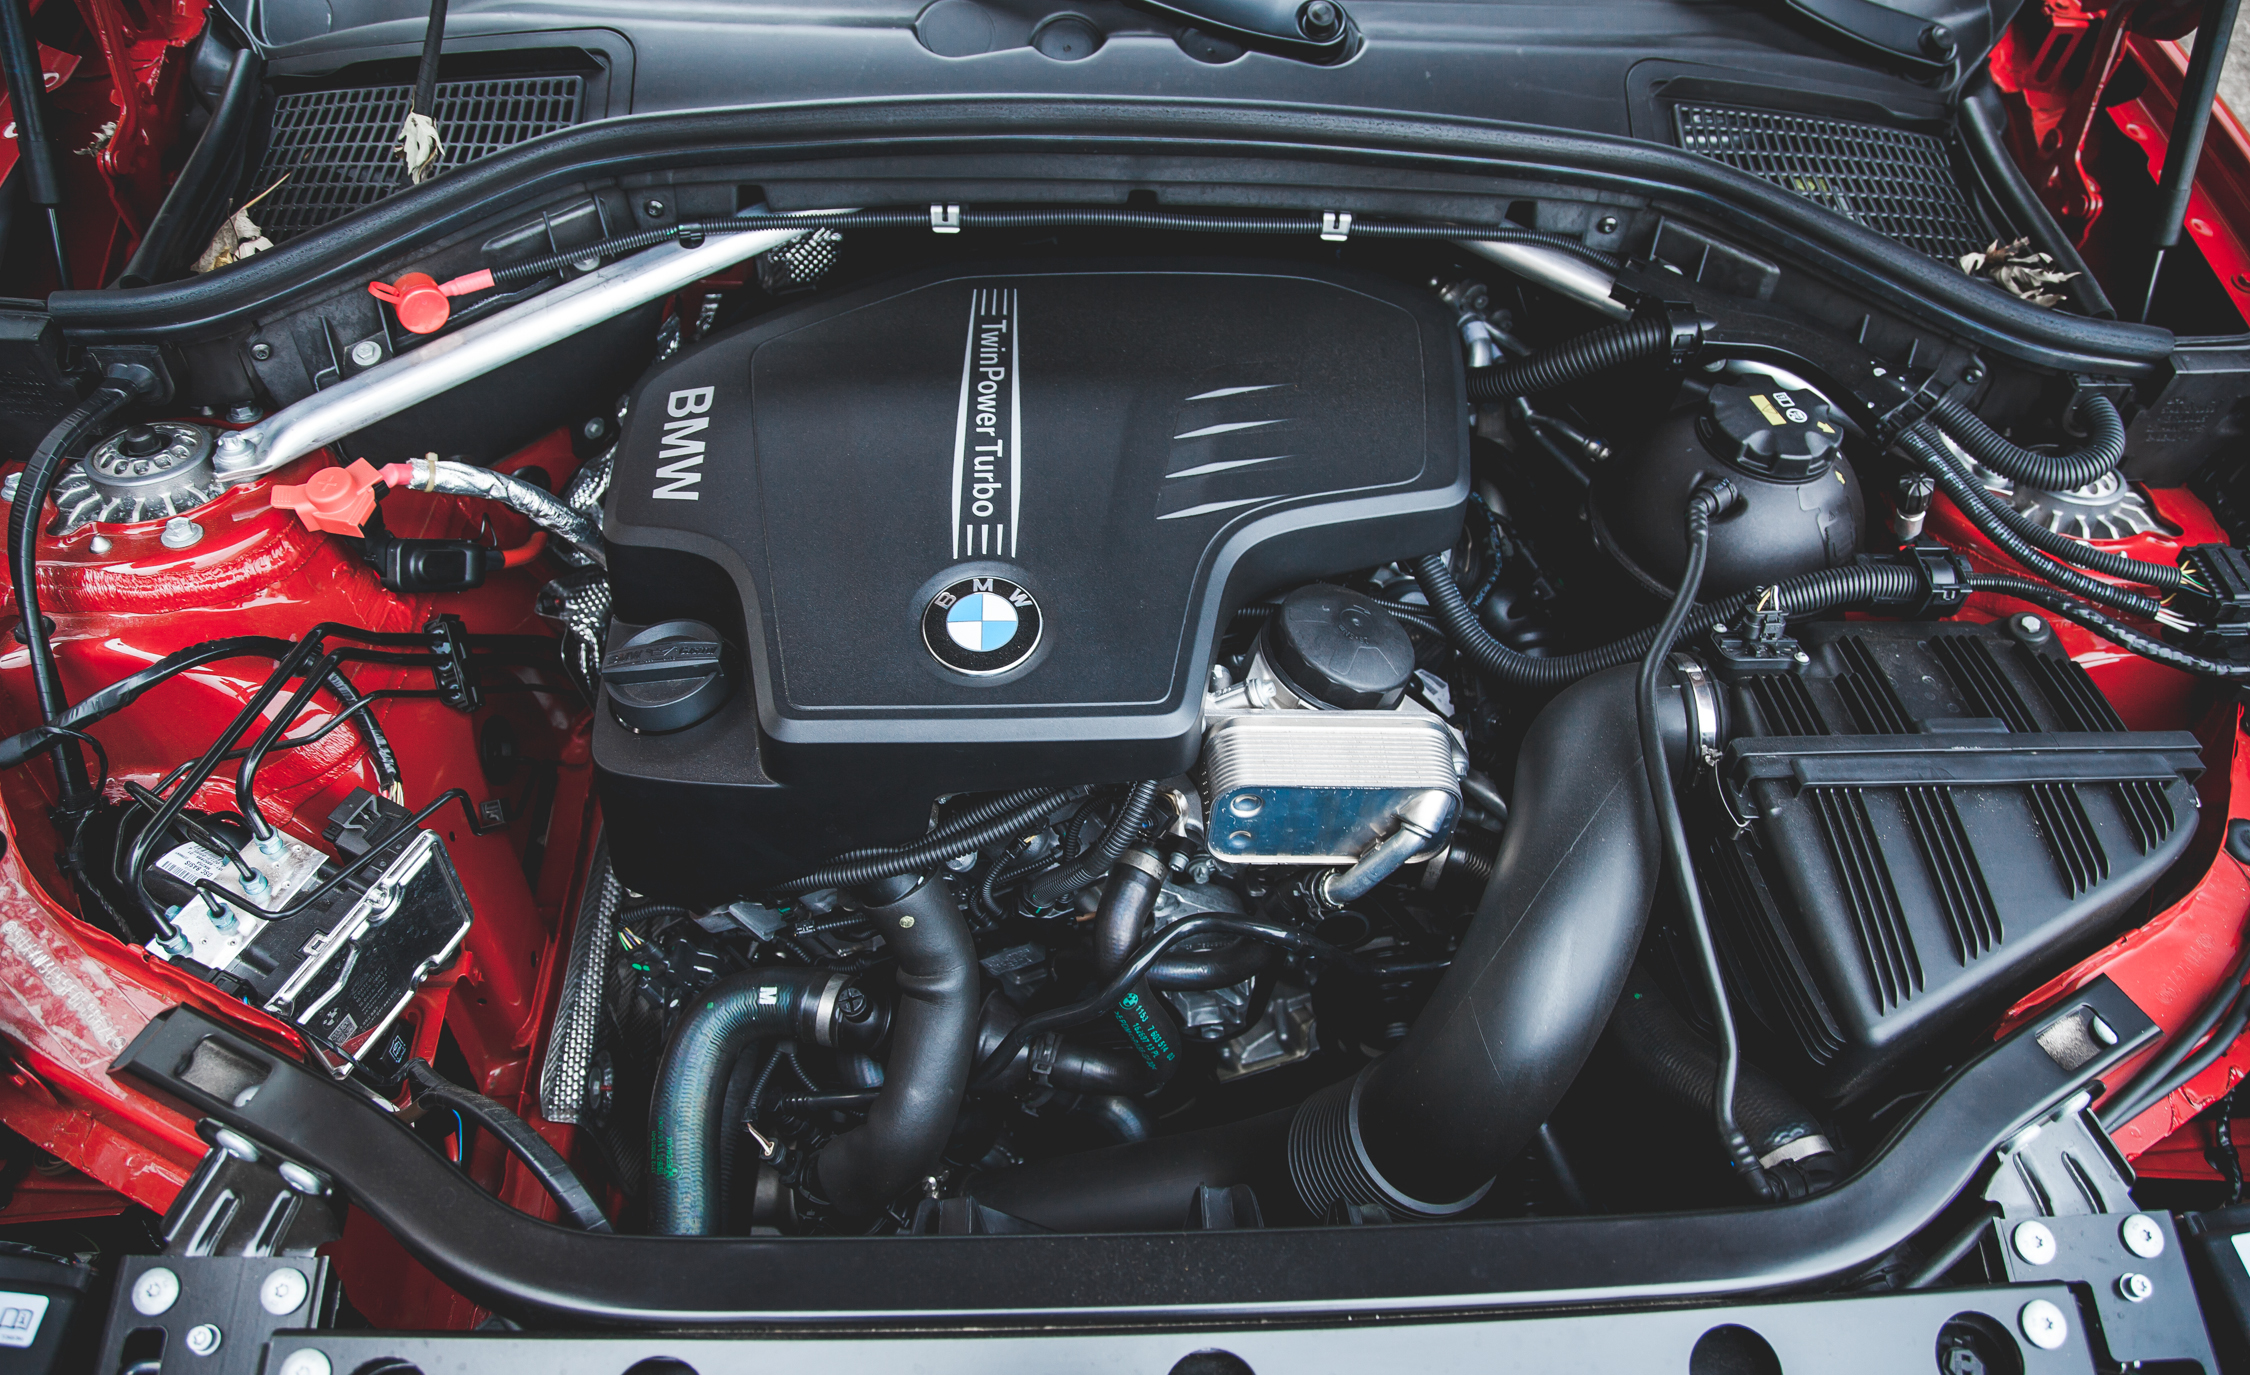 2015 BMW X4 XDrive28 Iturbocharged 2.0 Liter Inline 4 Engine (Photo 1 of 29)